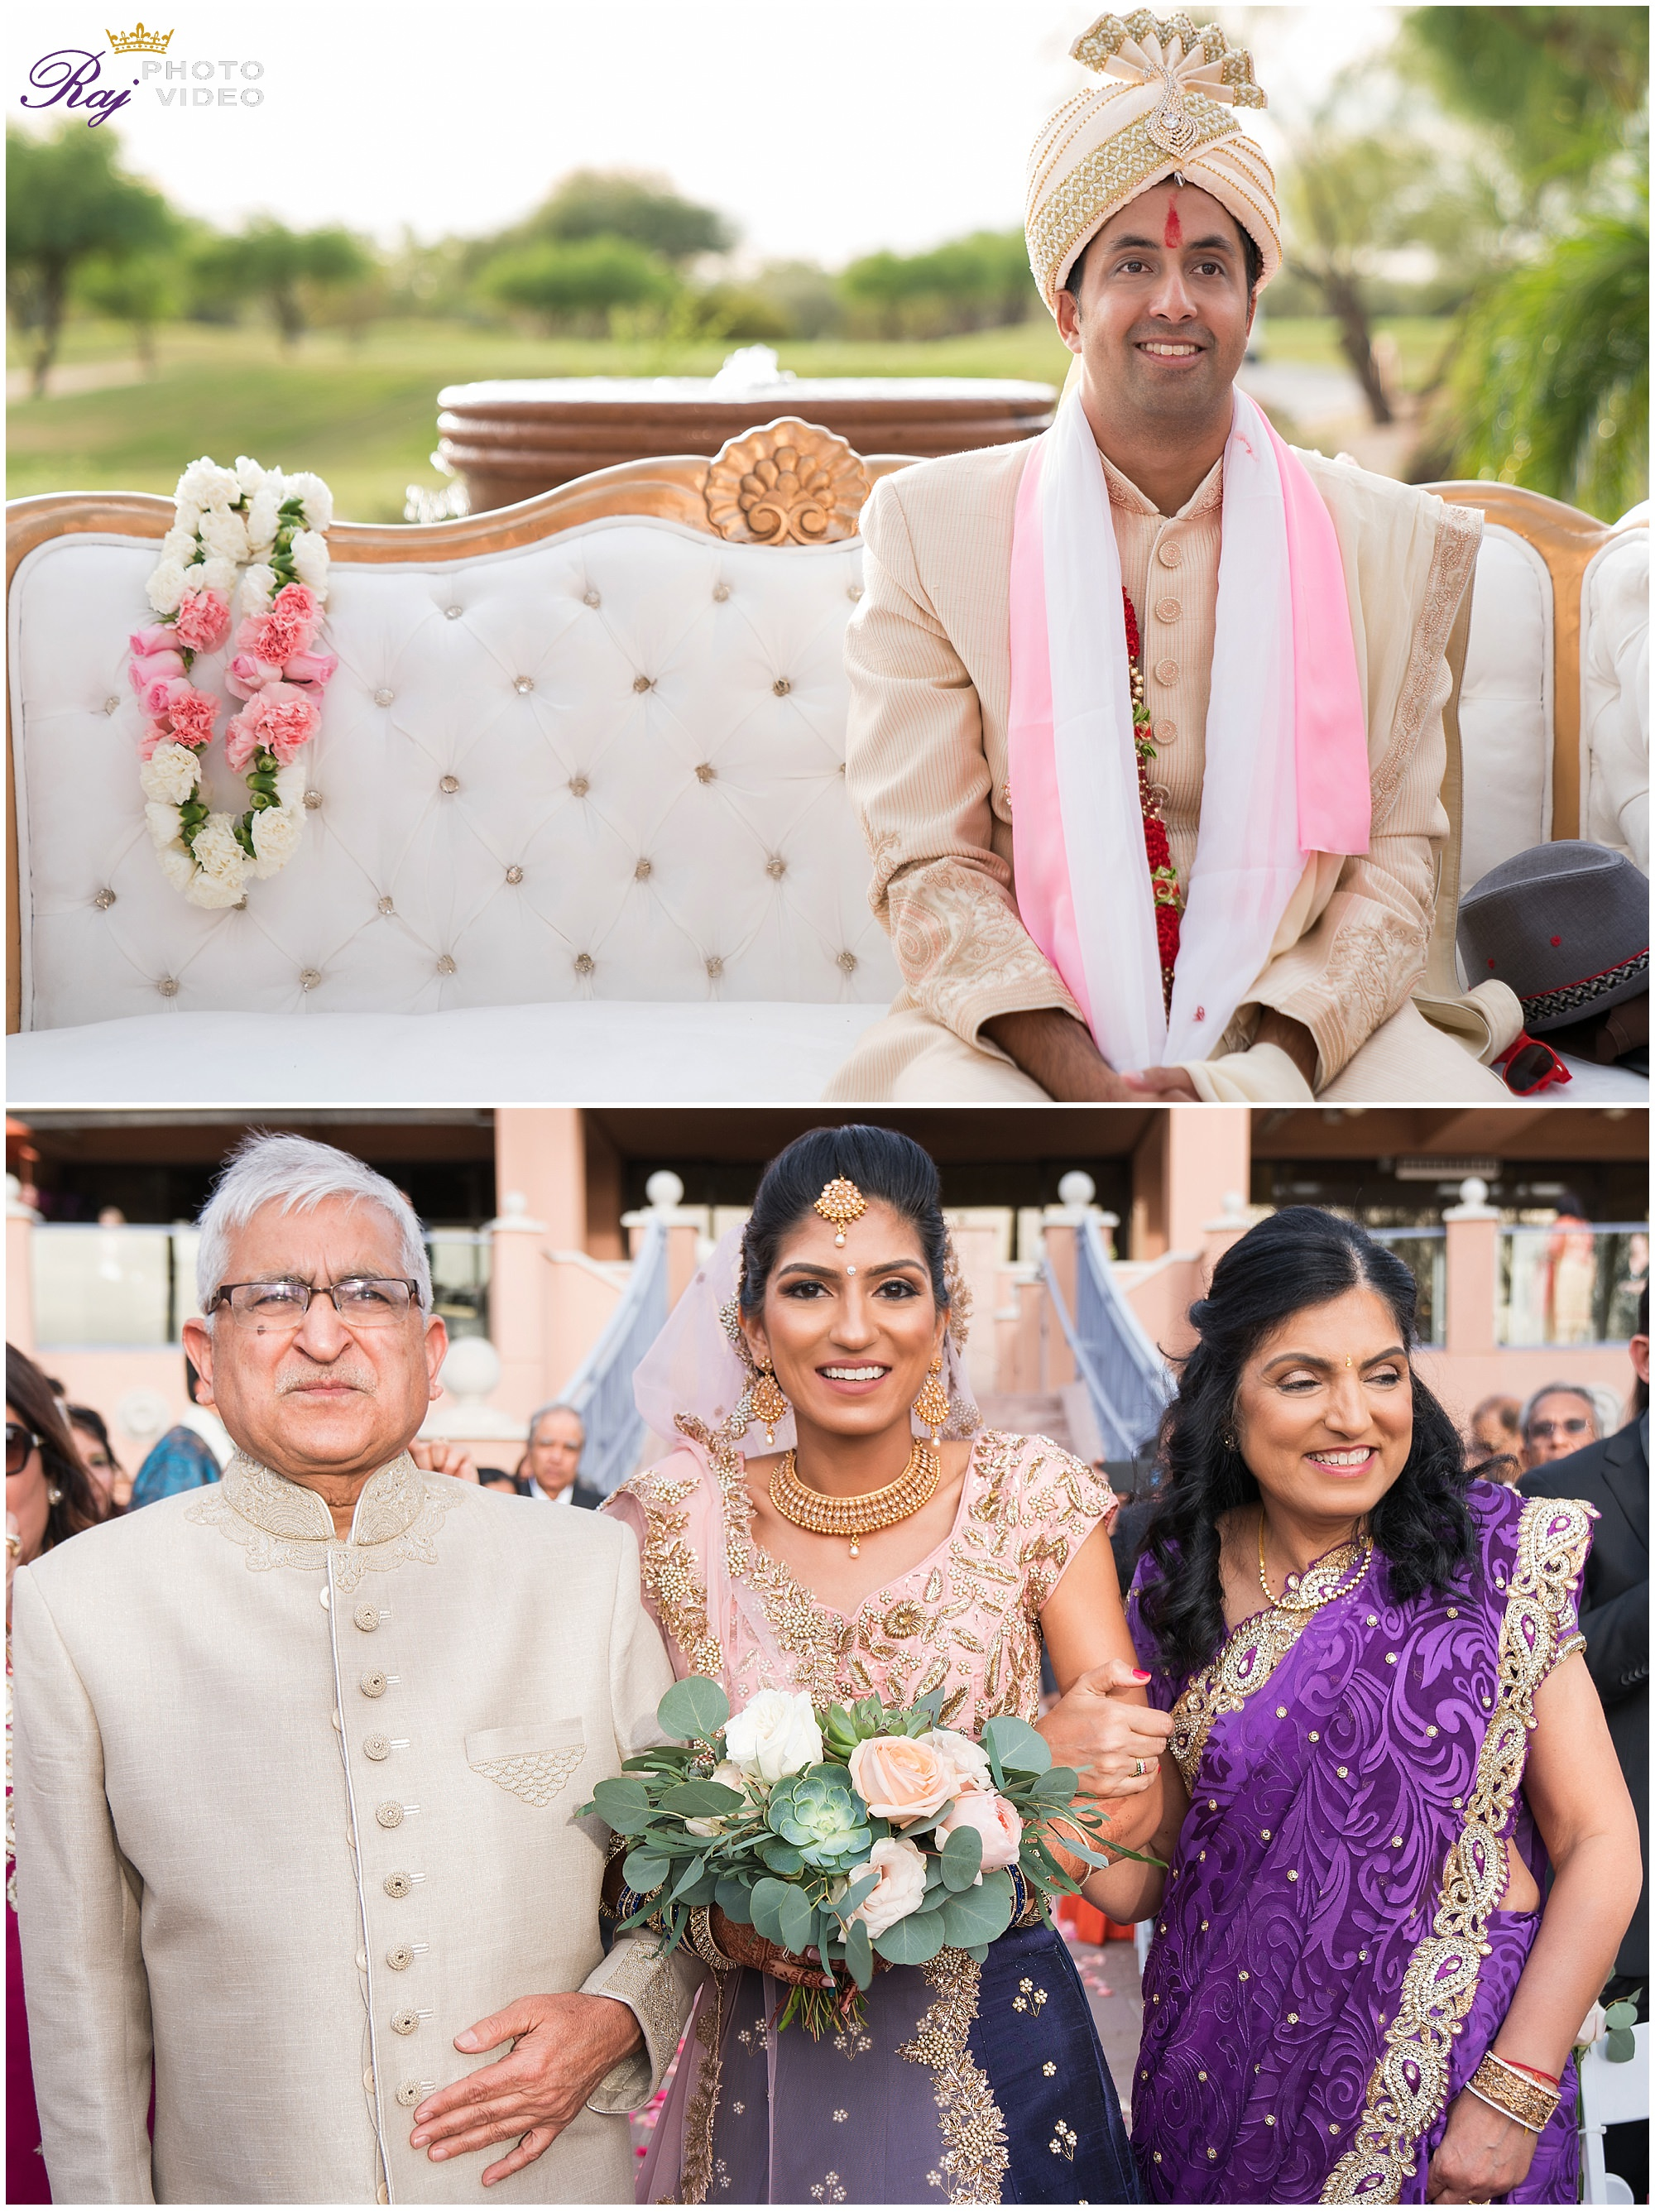 Scottsdale_Marriott_at_McDowell_Mountains_Arizona_Indian_Wedding_Sapna_Shyam-50.jpg